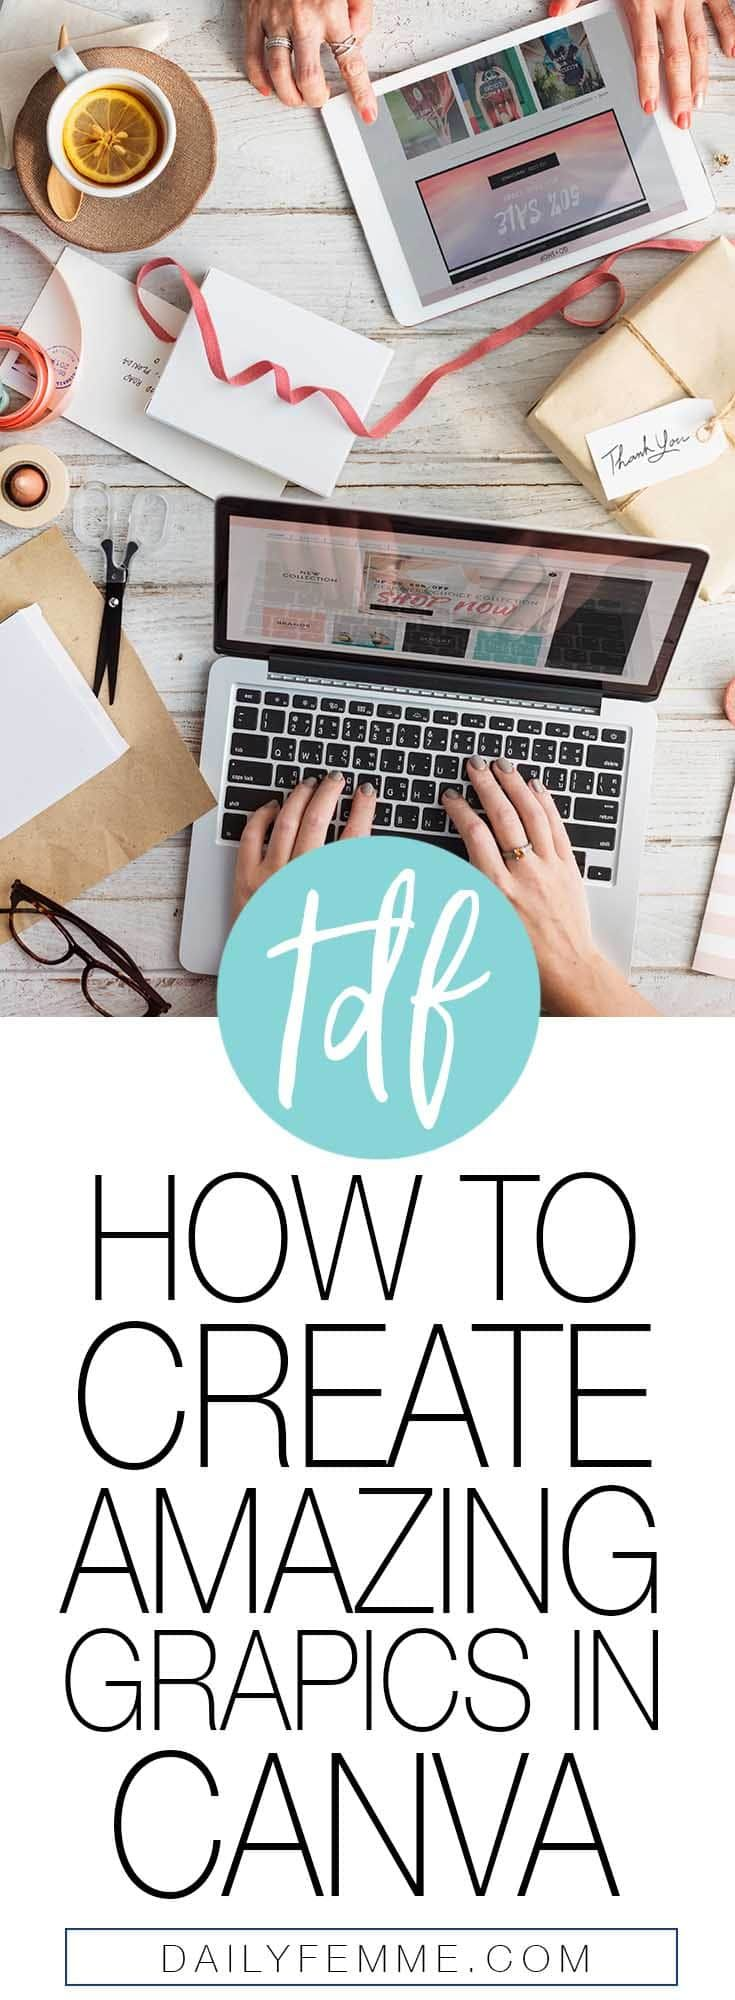 The visual representation of your business and blog is a big deal, it needs to be appealing. Here's a tutorial on how to create amazing graphics using Canva. You can use these graphics for pinnable images, Pinterest Marketing, Facebook Marketing, Instagram Posts or any type of social media marketing.